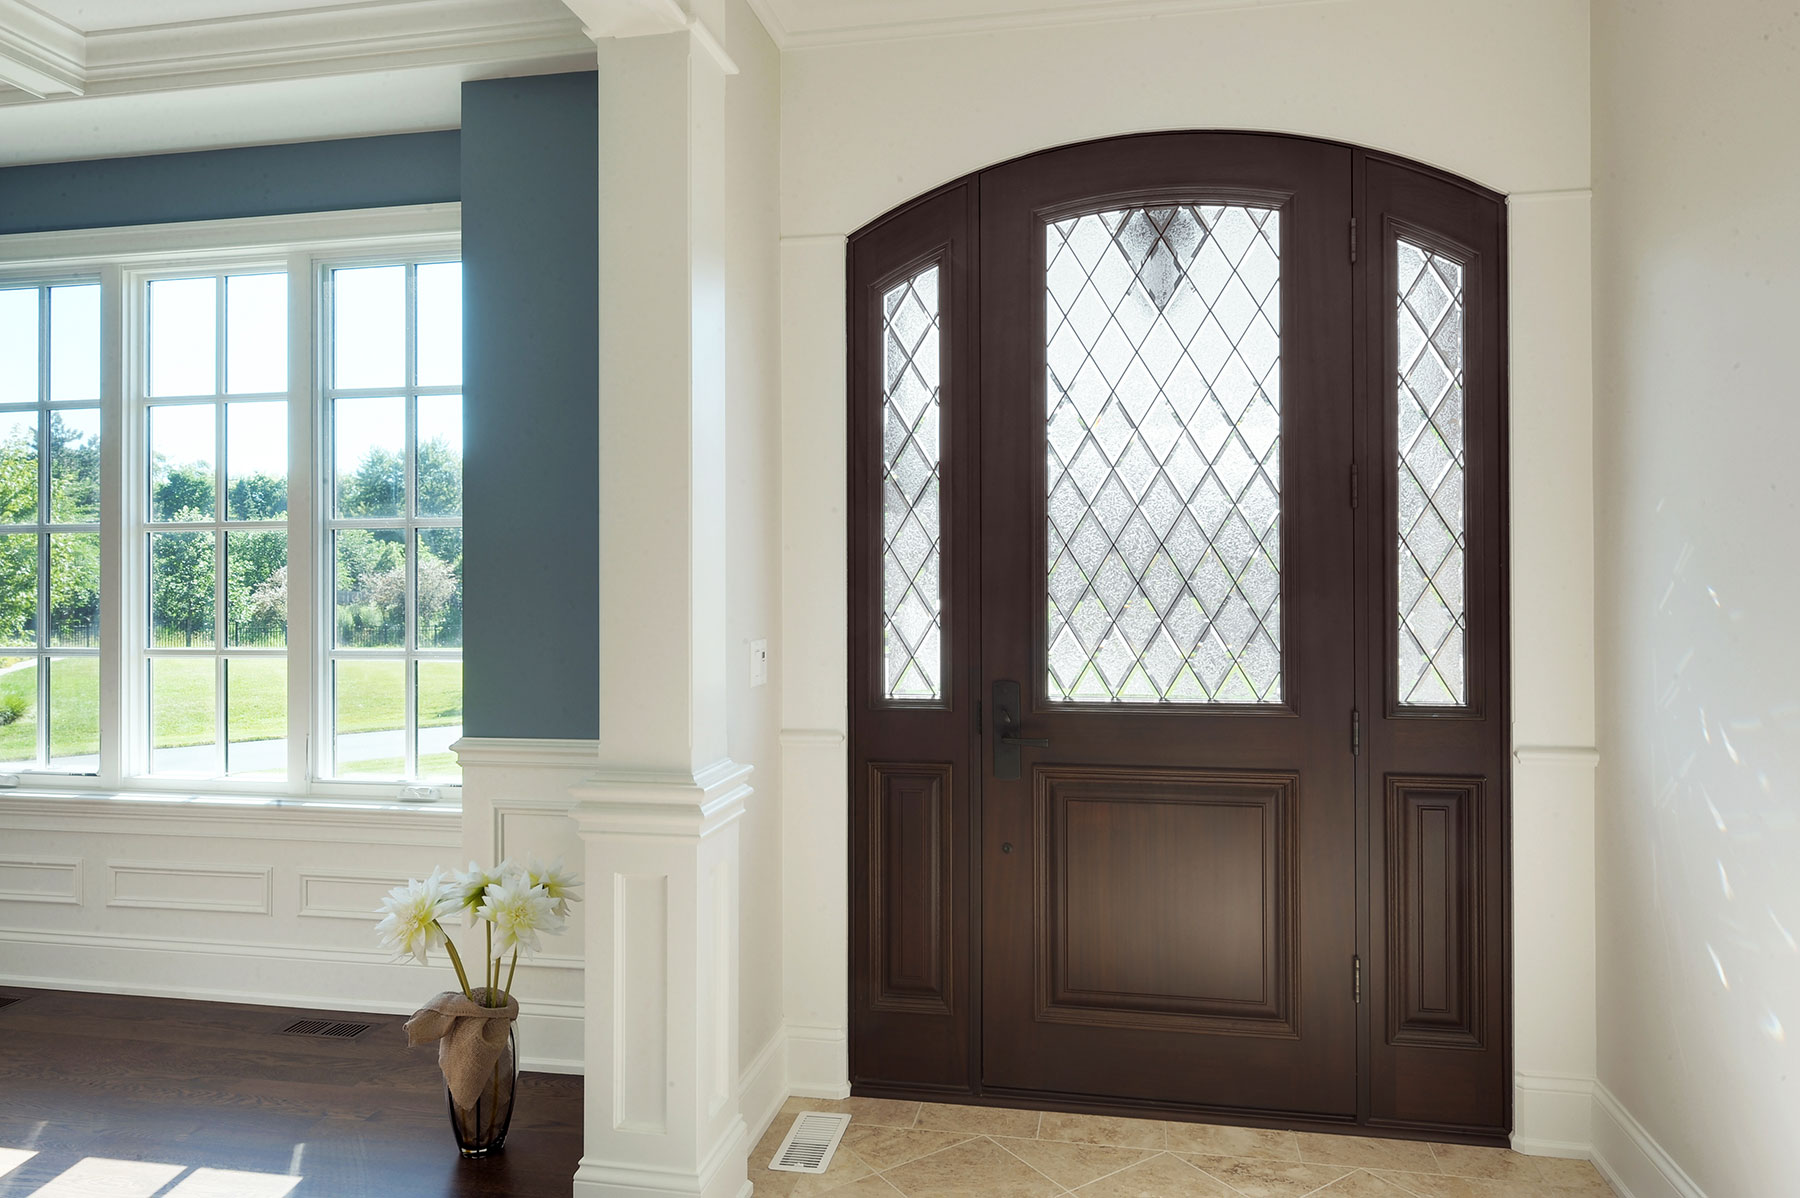 Solid Wood Front Entry Doors in-Stock | classic style mahogany front entry door, interior view, with privacy glass DB-552DG 2SL - Glenview Doors - Custom Doors in Chicago